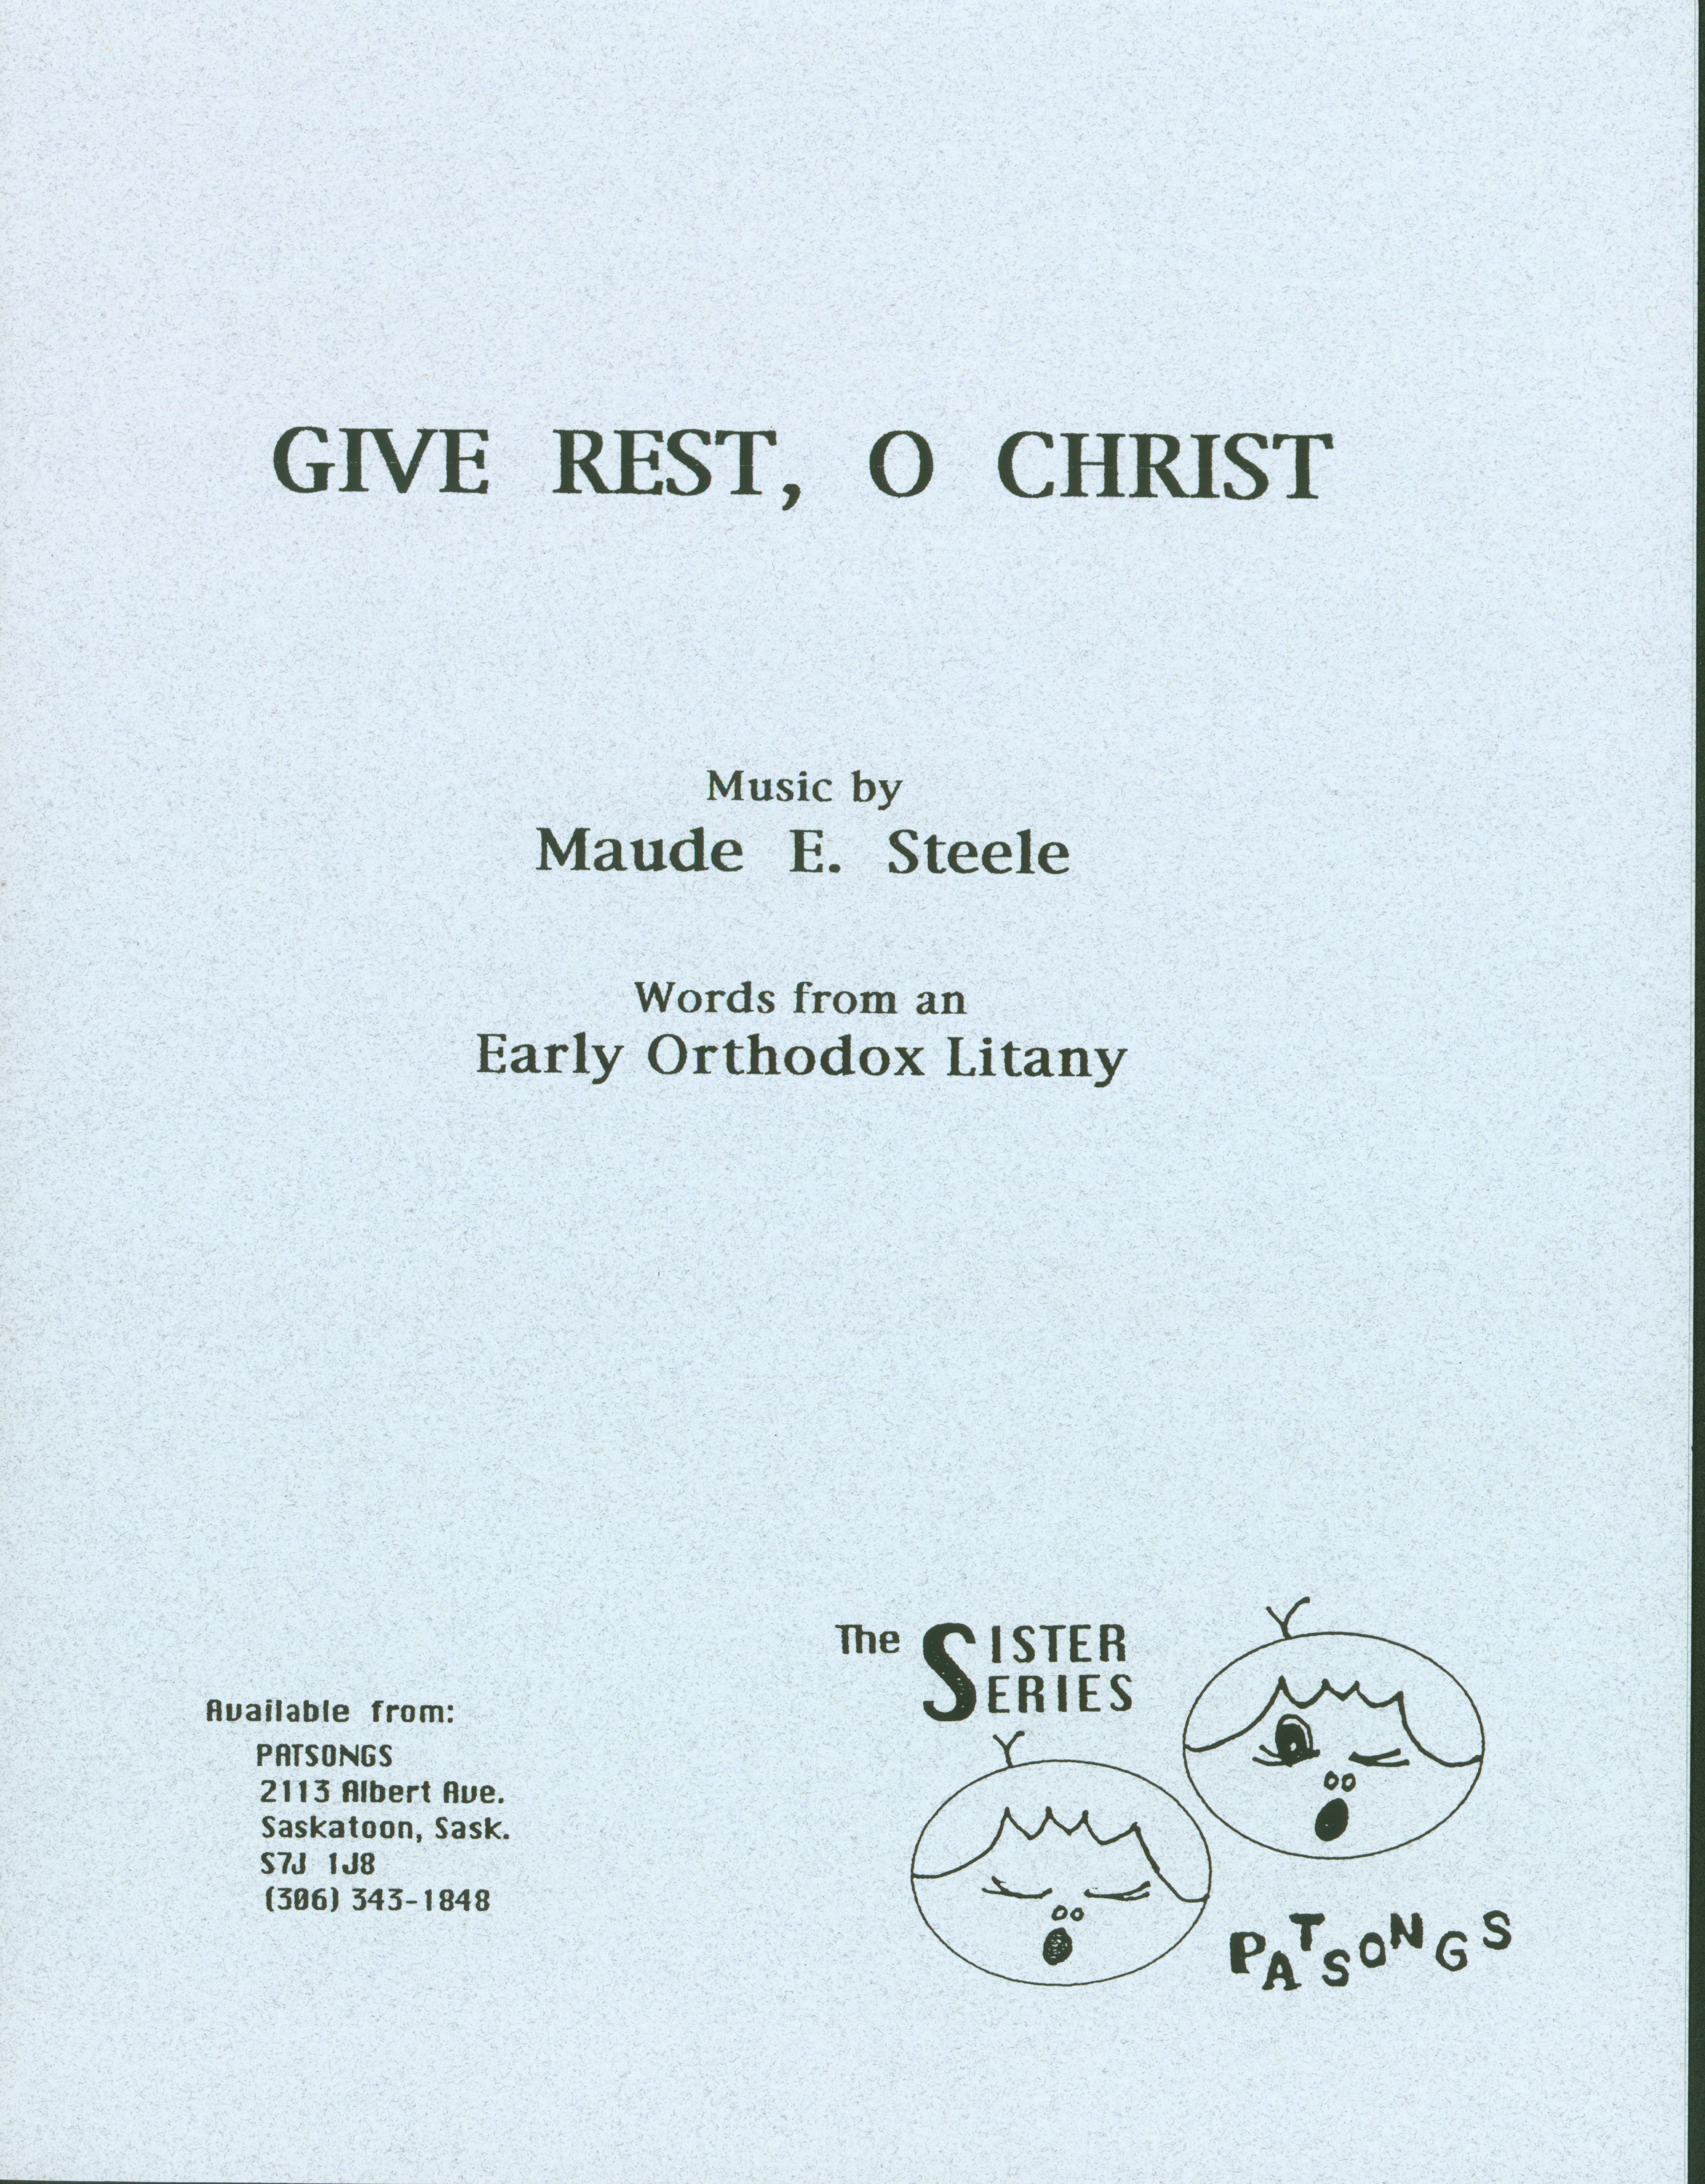 Give rest, O Christ